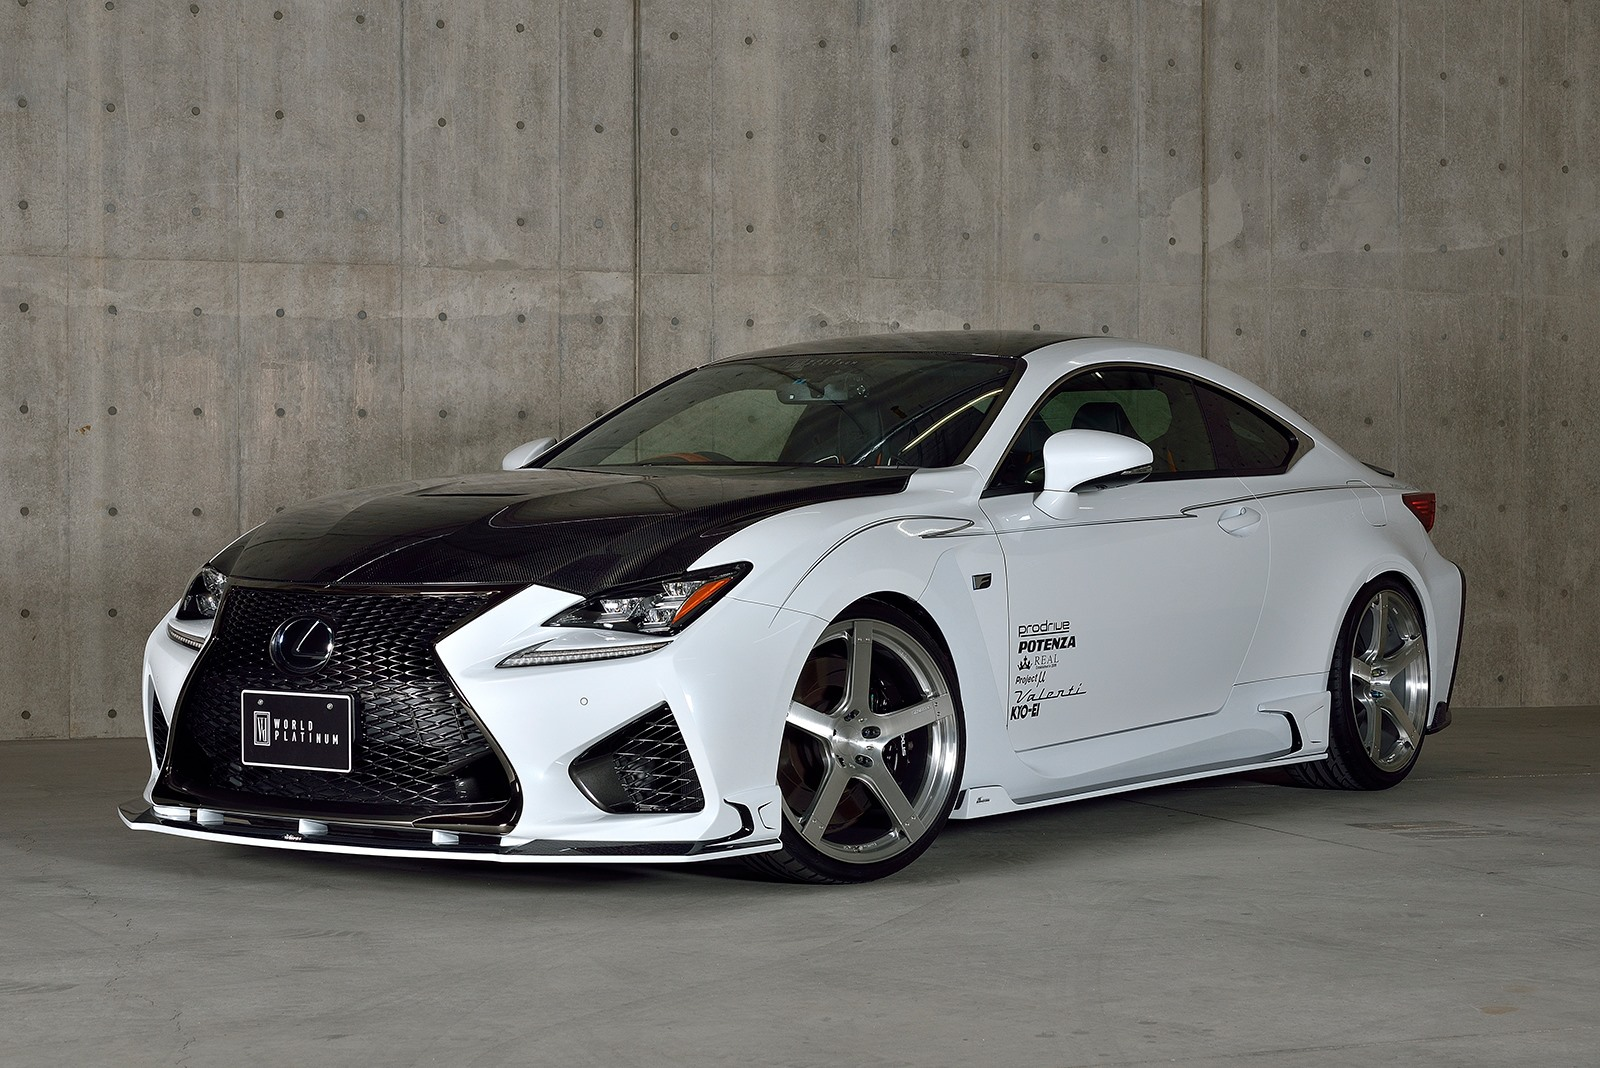 Modified Sports Car Wallpaper Lexus Rc F Tuned By Rowen Japan With Carbon Parts And